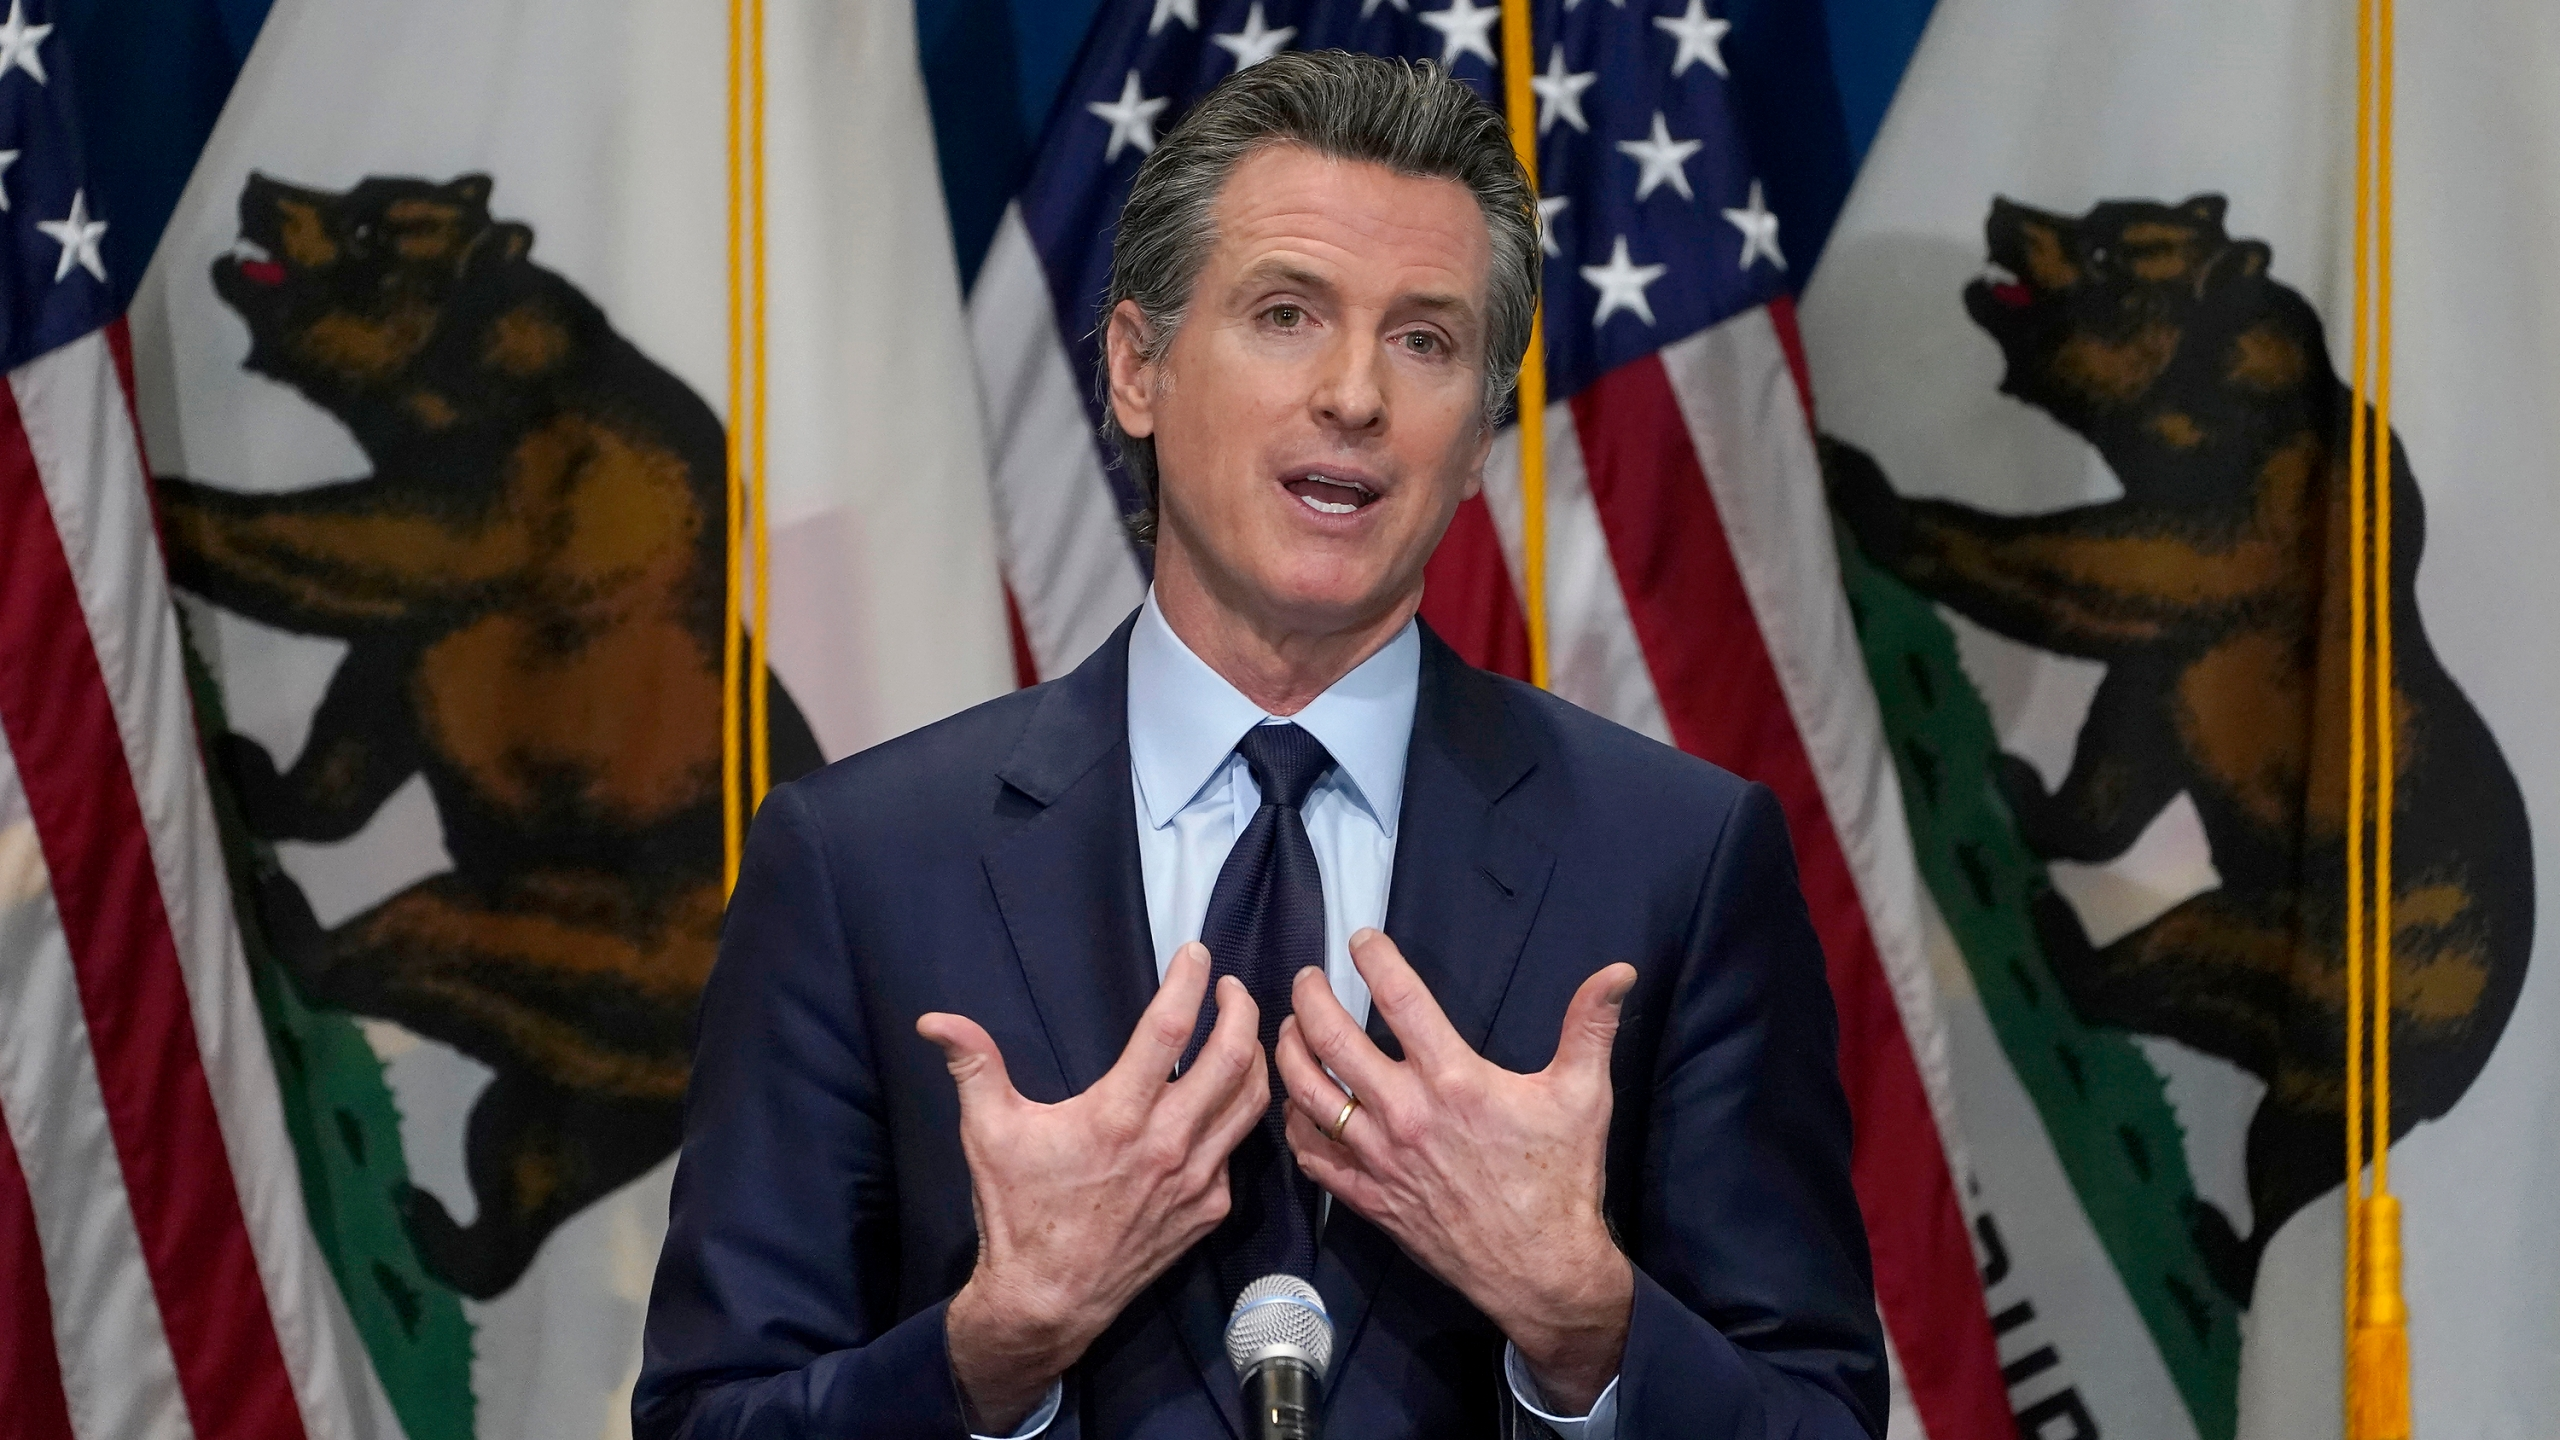 In this Jan. 8, 2021, file photo, California Gov. Gavin Newsom outlines his 2021-2022 state budget proposal during a news conference in Sacramento, Calif. The California Democratic Party is gathering for its annual convention on the heels of a recall against Newsom reaching the signature threshold to qualify for the ballot. (AP Photo/Rich Pedroncelli, Pool, File)